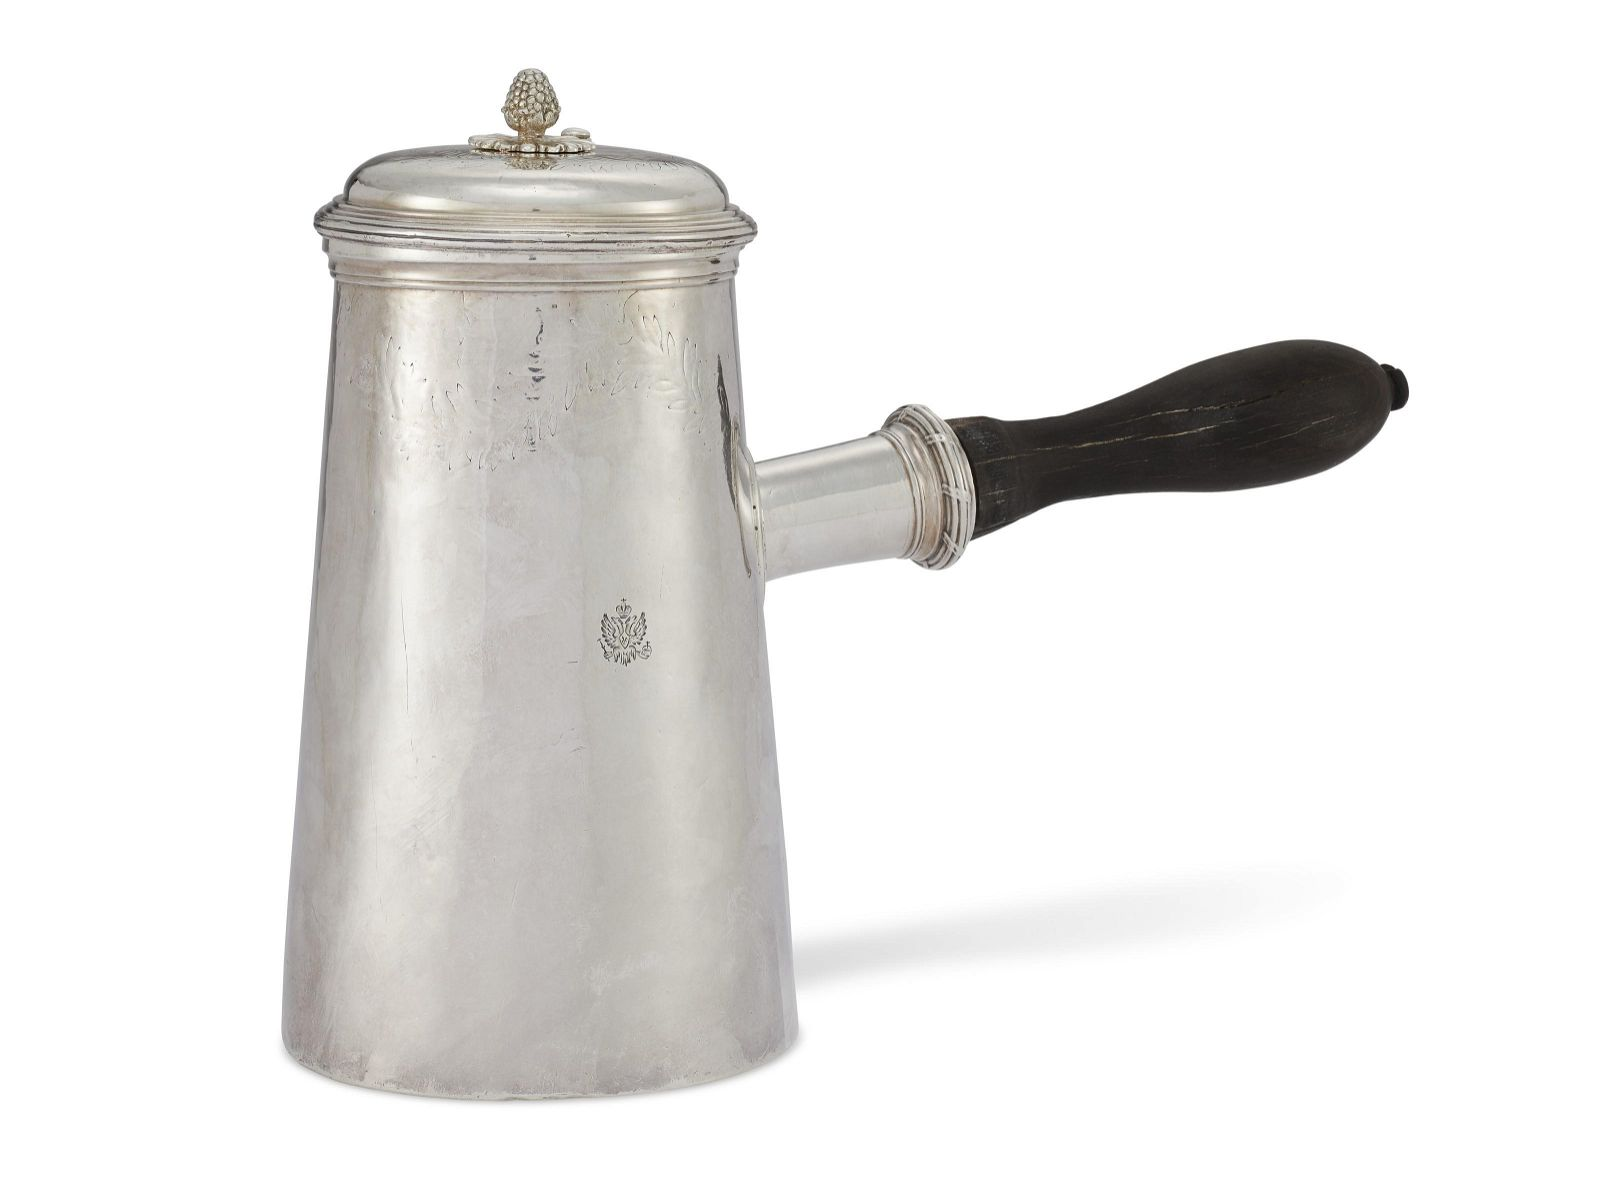 A LOUIS XV SILVER CHOCOLATE POT FROM THE ORLOFF SERVICE